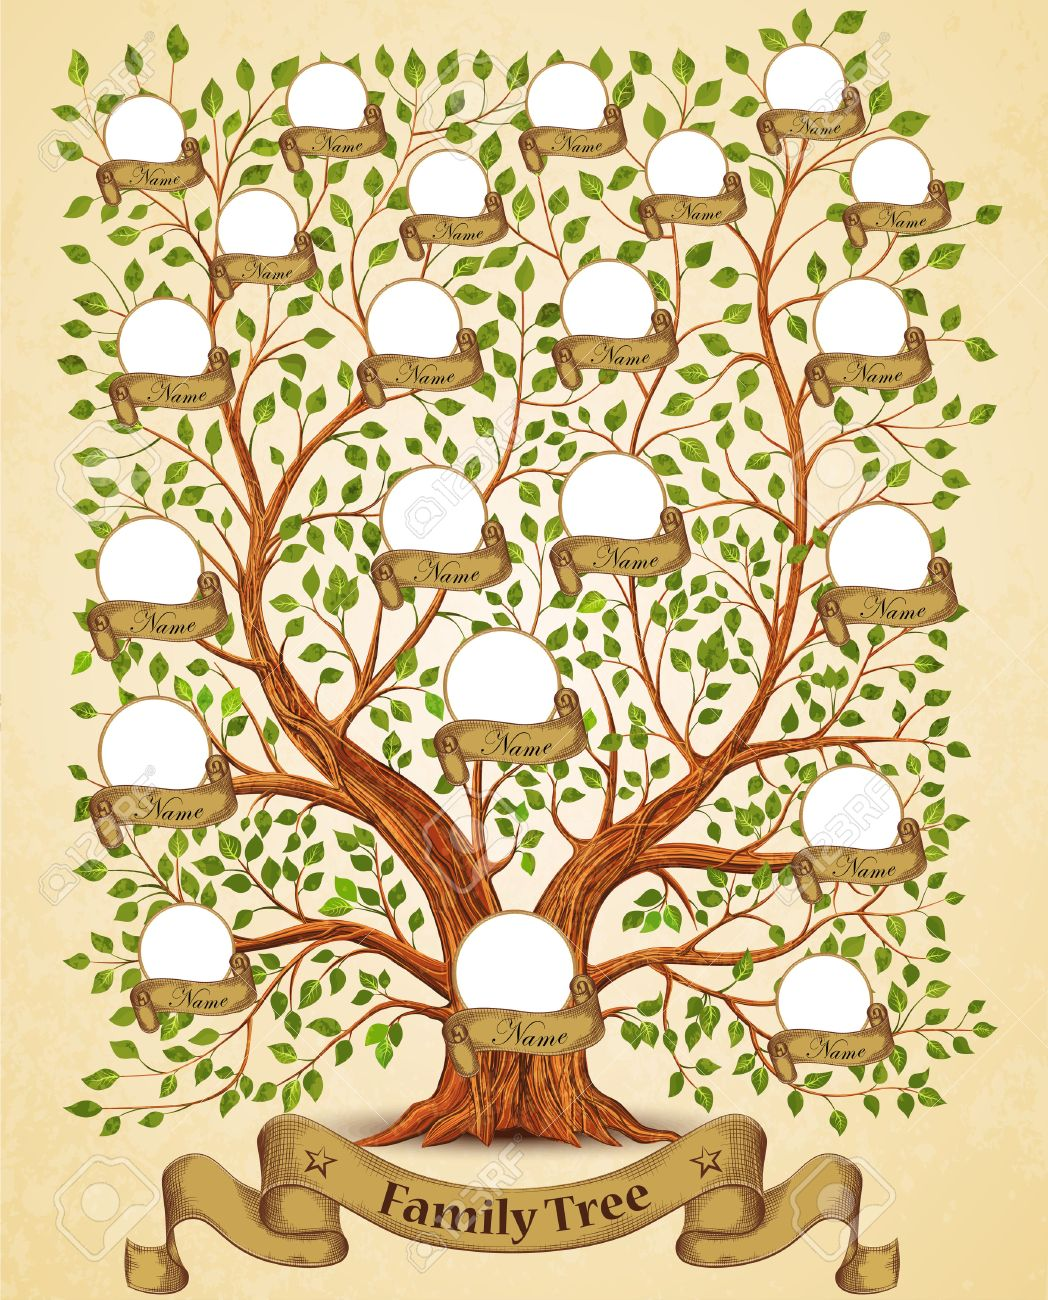 family tree template vintage vector illustration stock vector 54790915